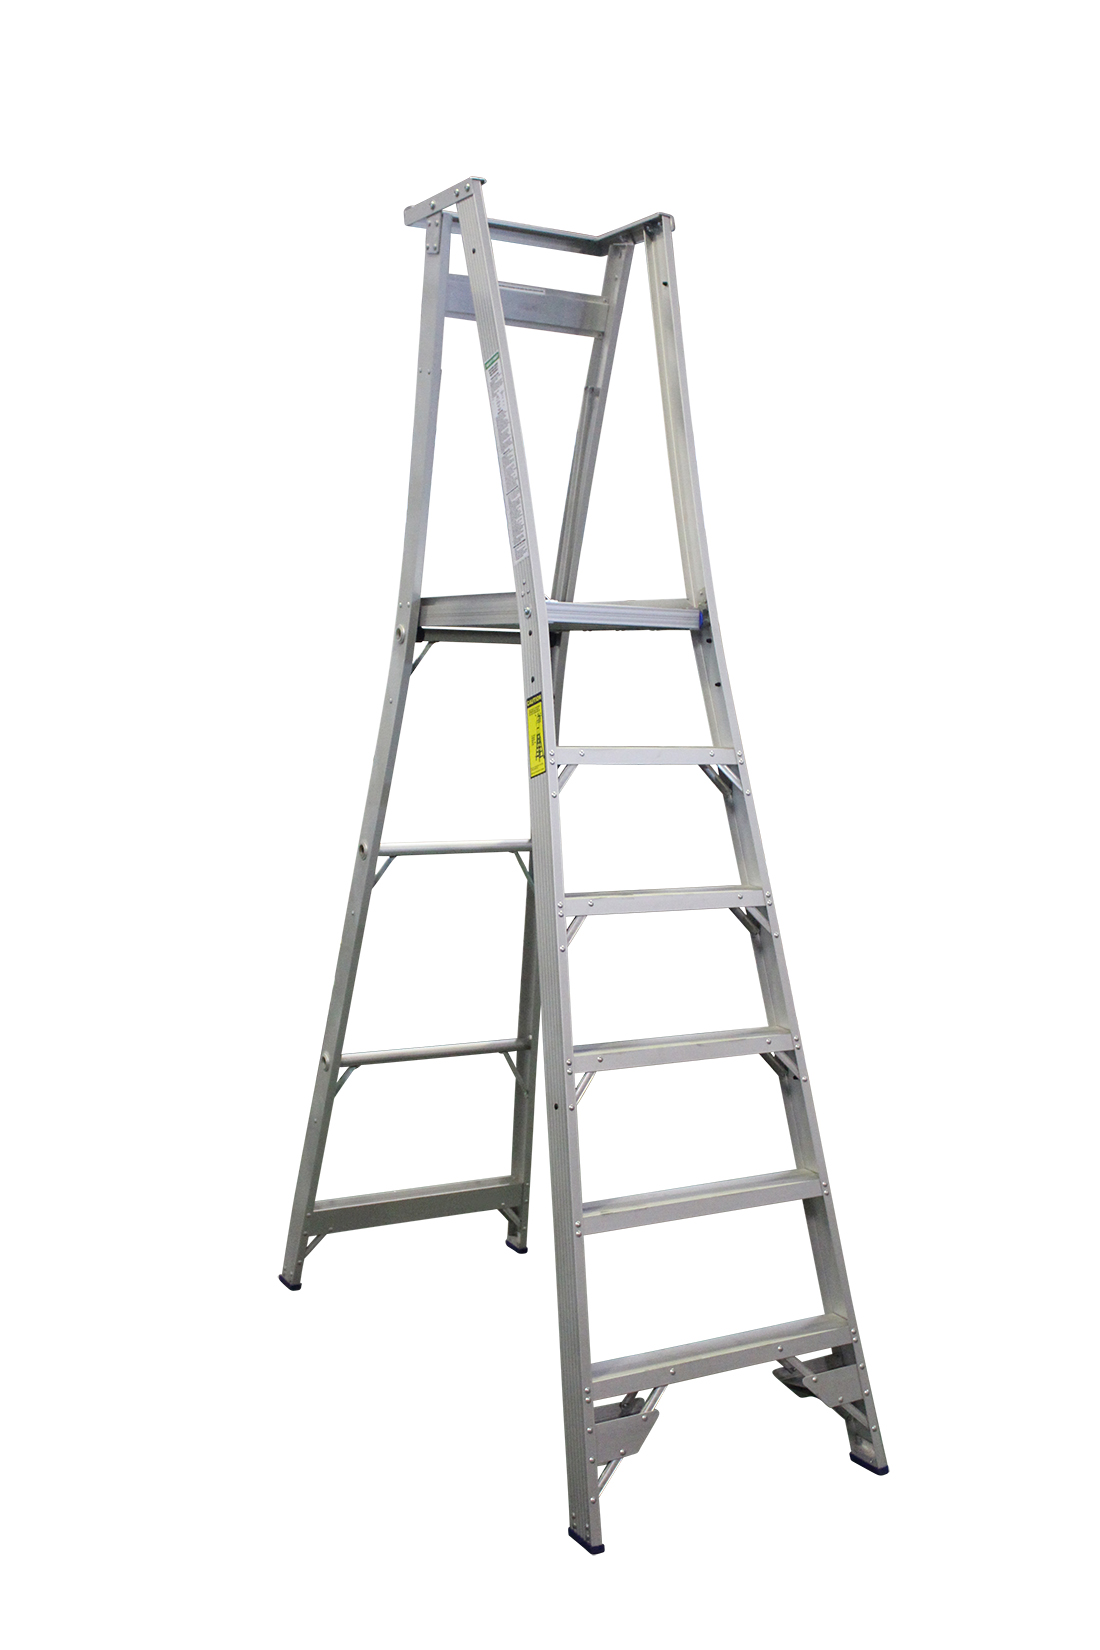 Indalex Pro Series Aluminium Platform Ladder 6 Steps 9ft